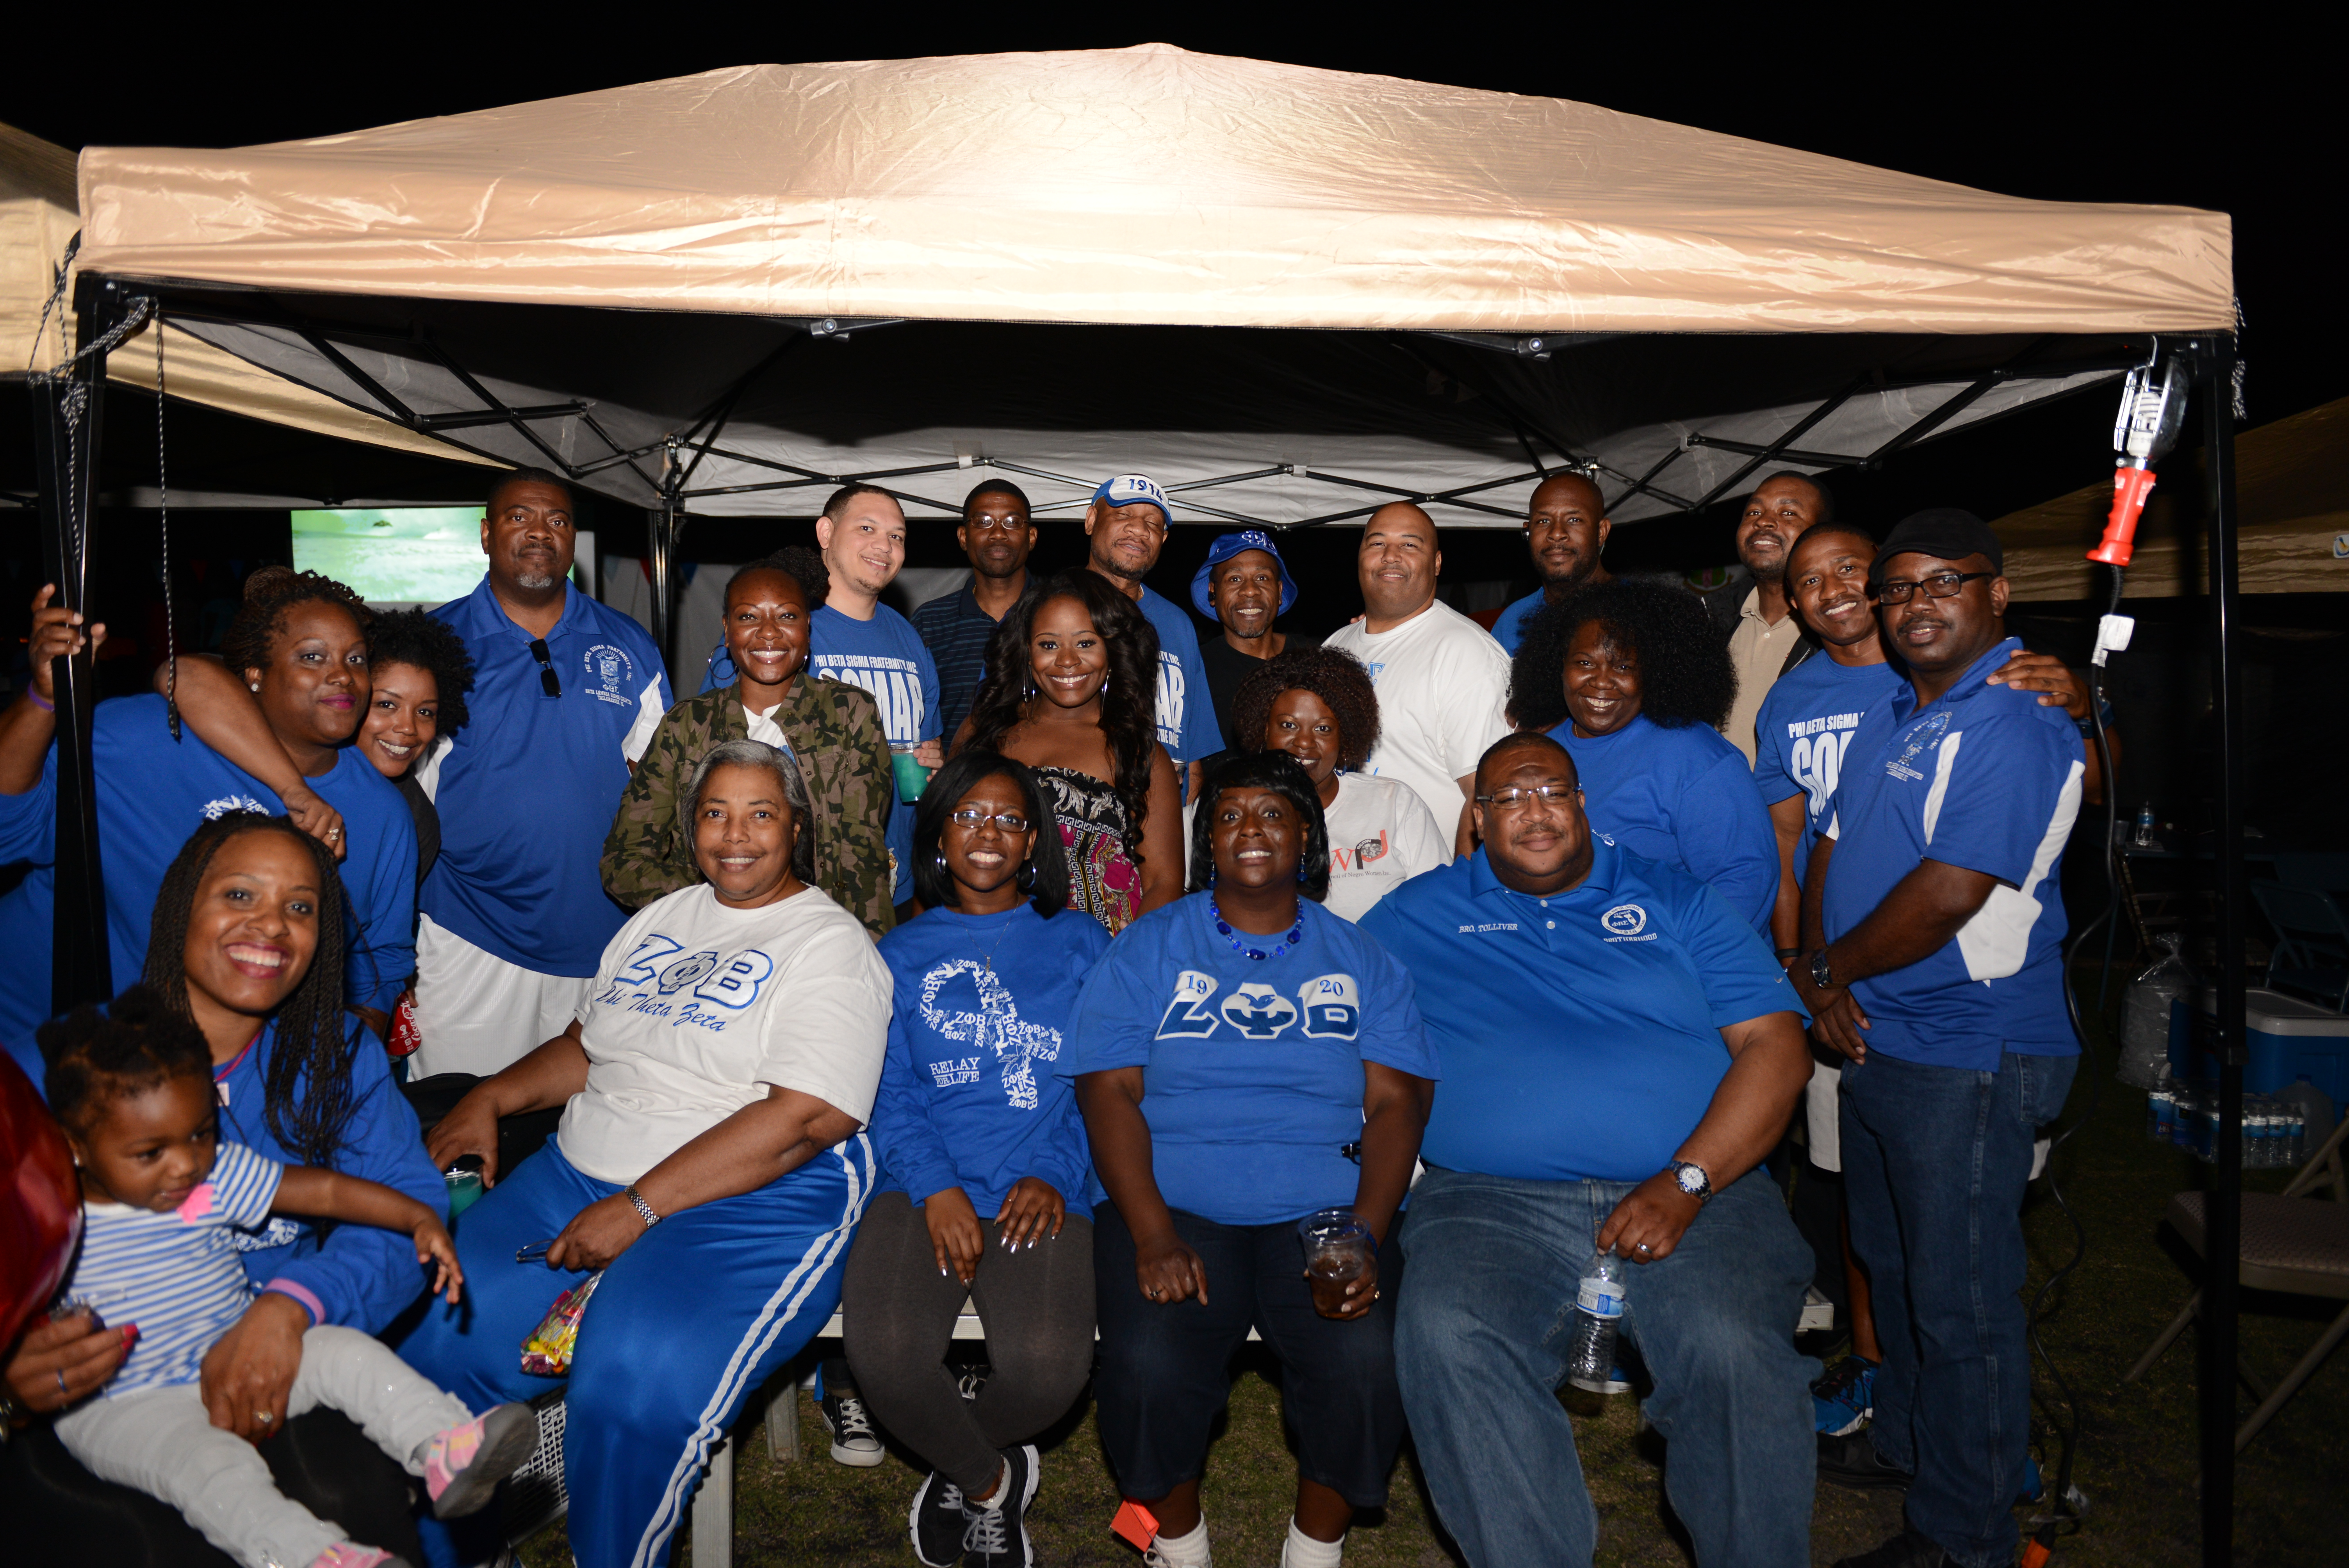 Blue & White invade Relay for Life